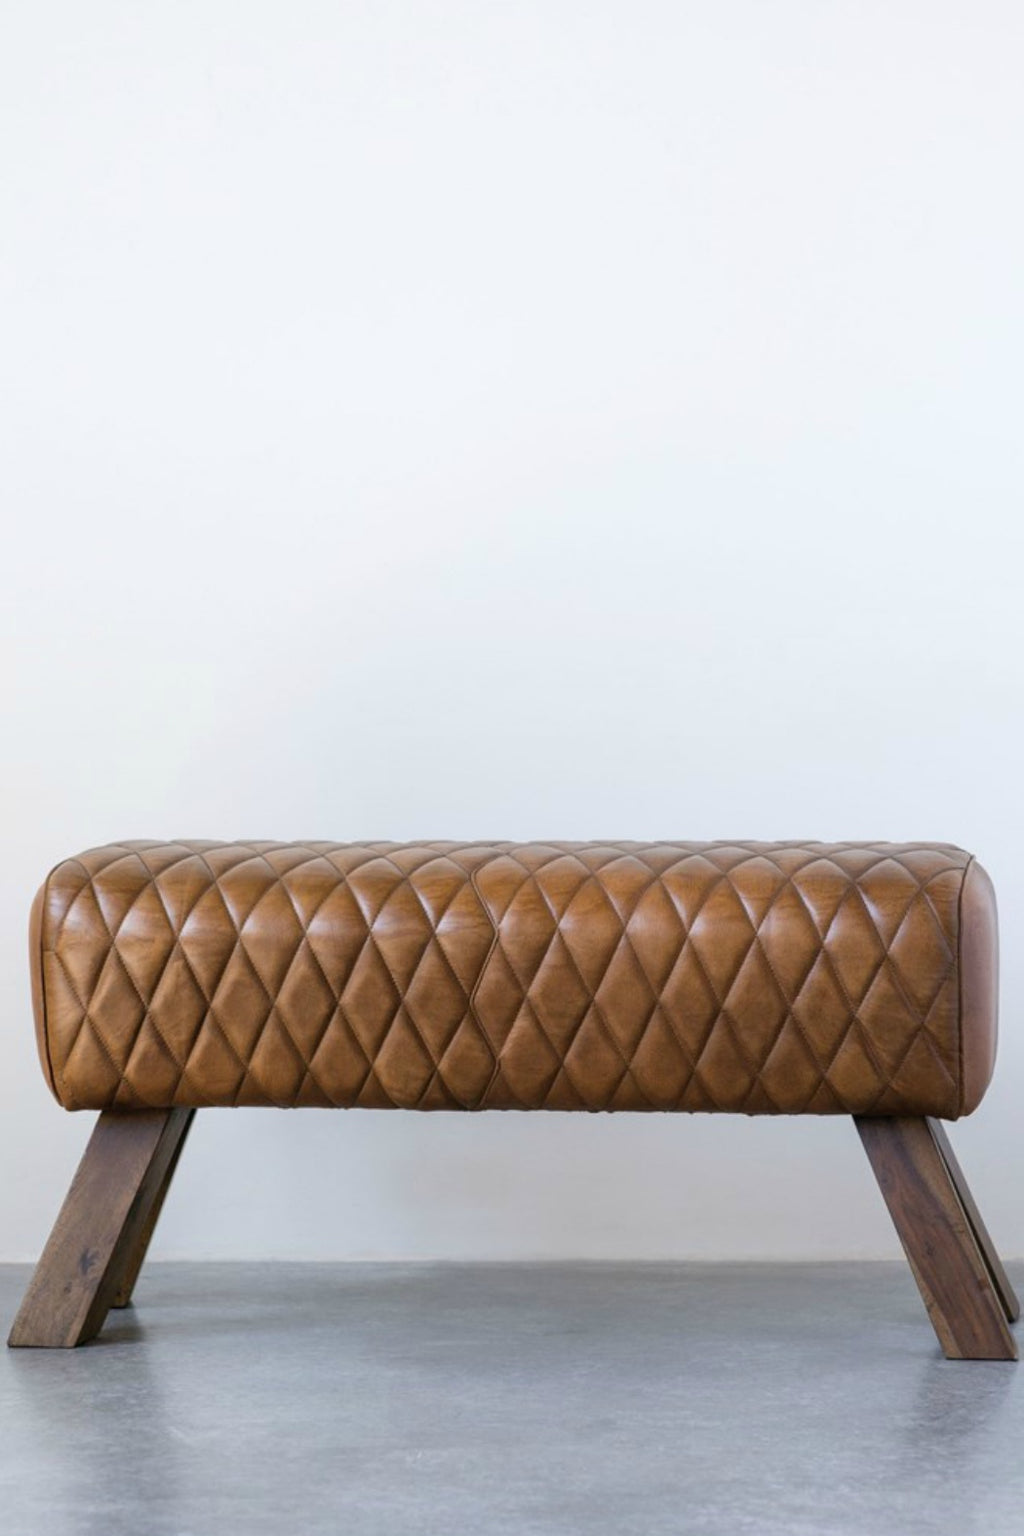 Benson Stitched Leather & Wood Bench